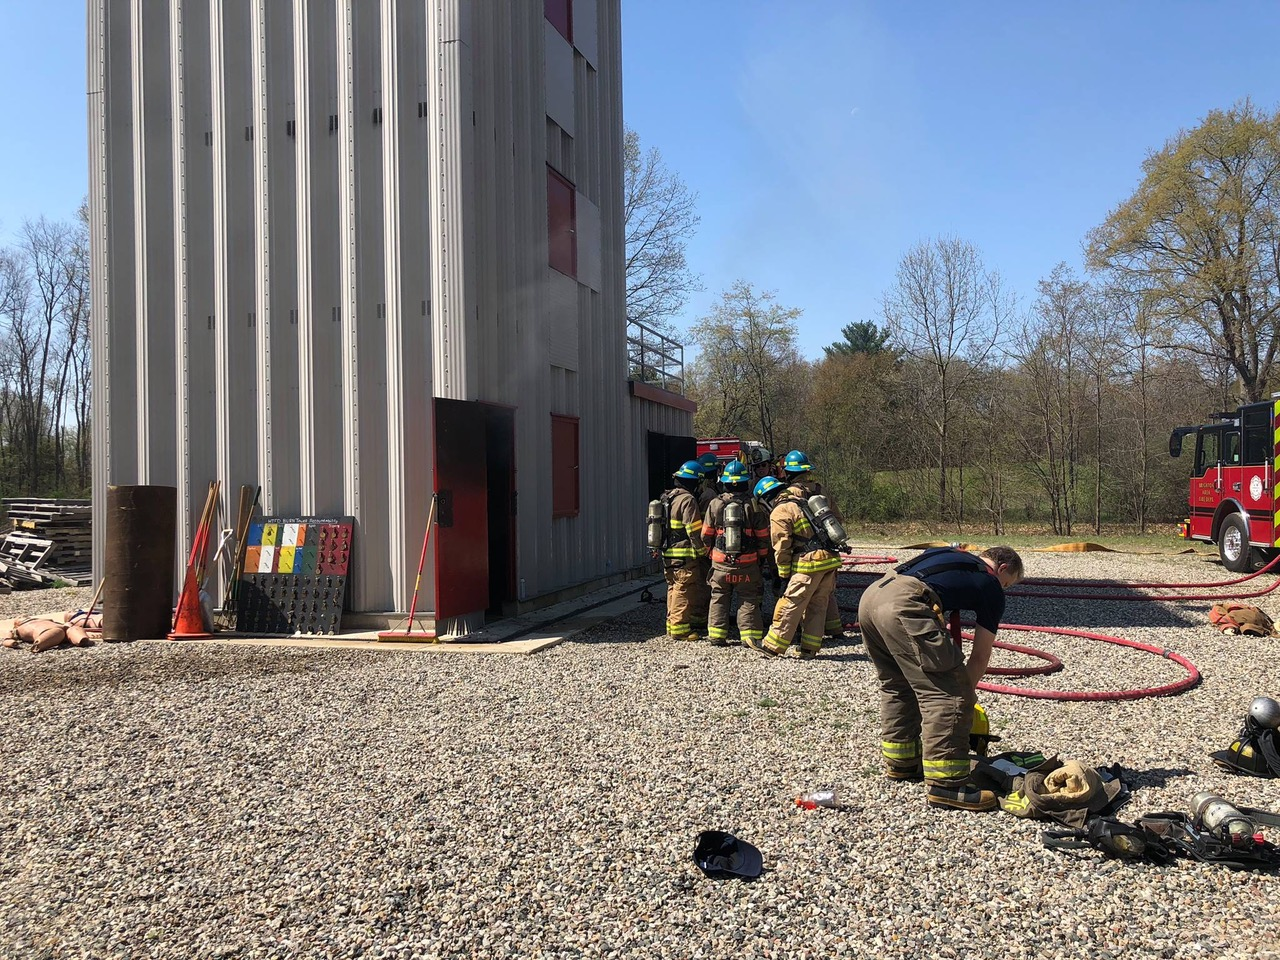 Firefighter training school at abandoned structure